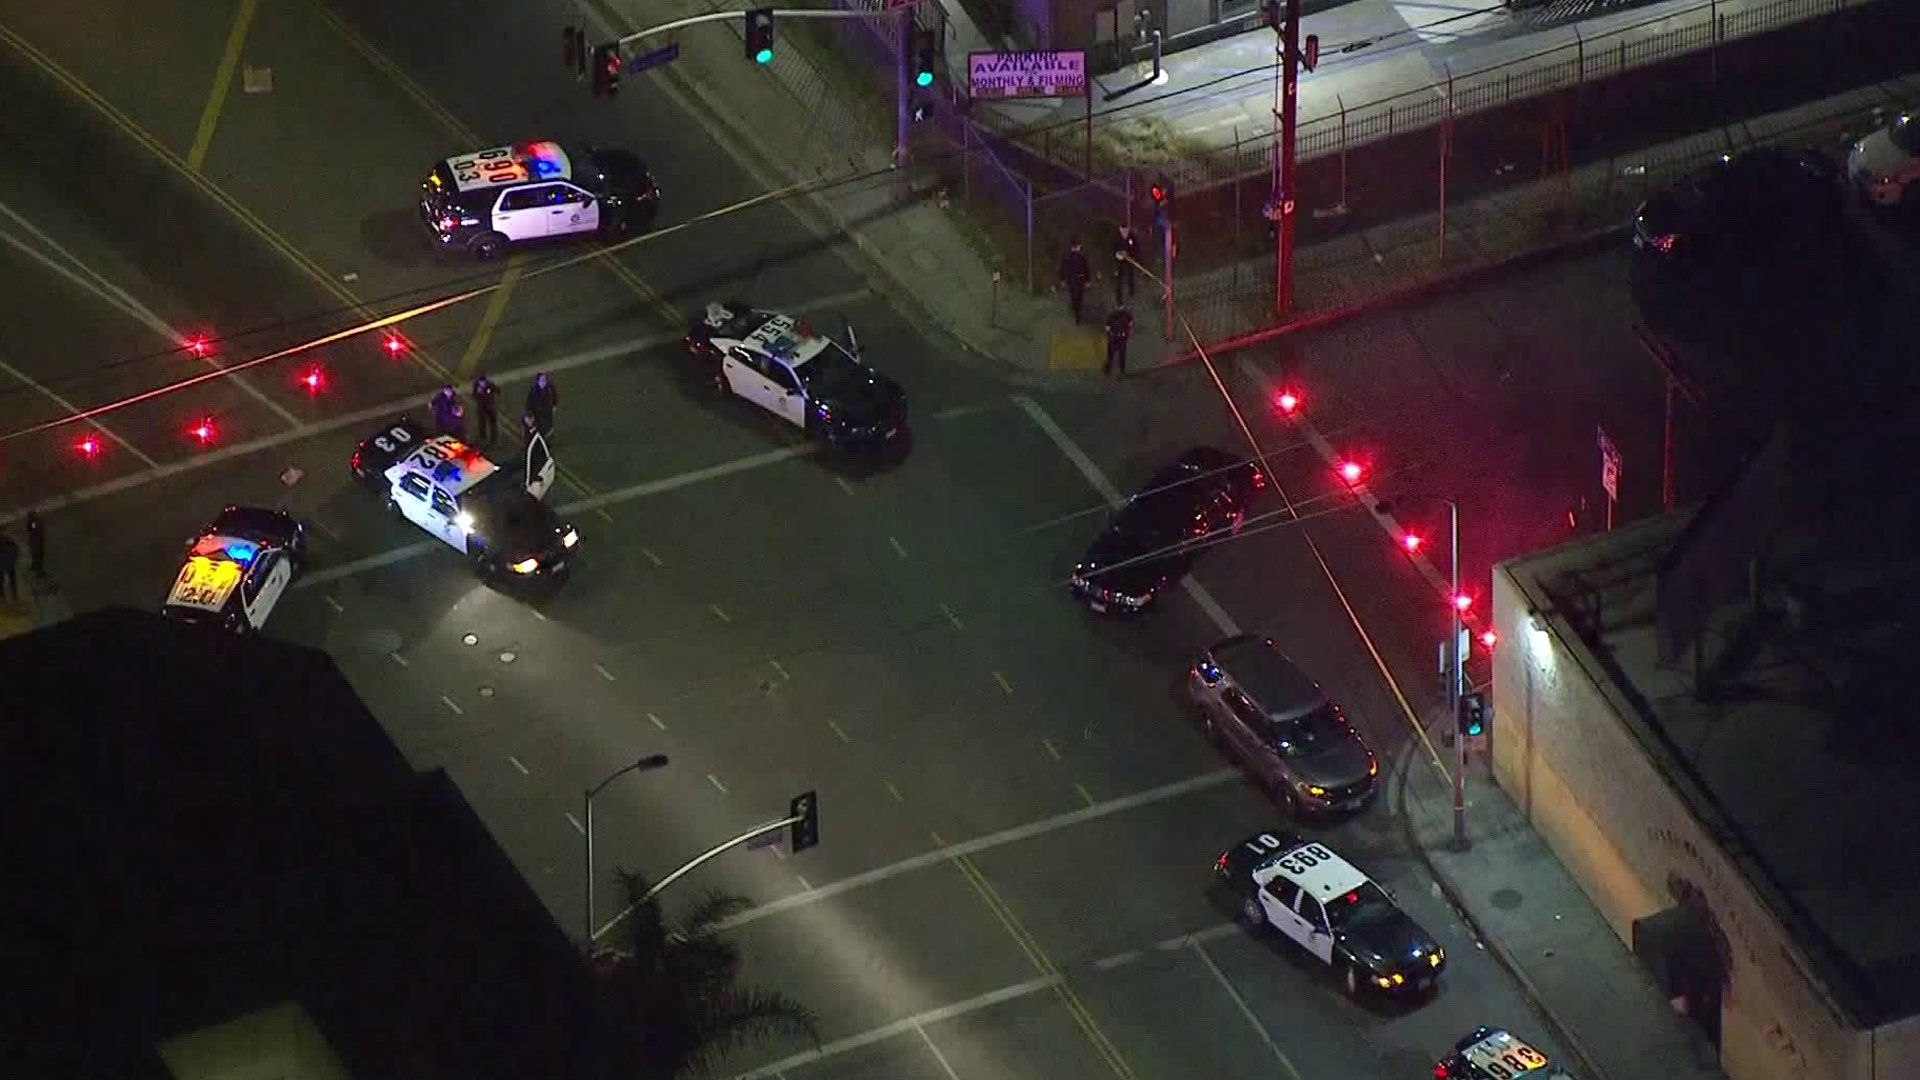 Lapd Officer Hospitalized After Being Shot In Suspected Ambush Attack Near Downtown Los Angeles Police Ktla Police Officer Shot Female Police Officers Los Angeles Police Department